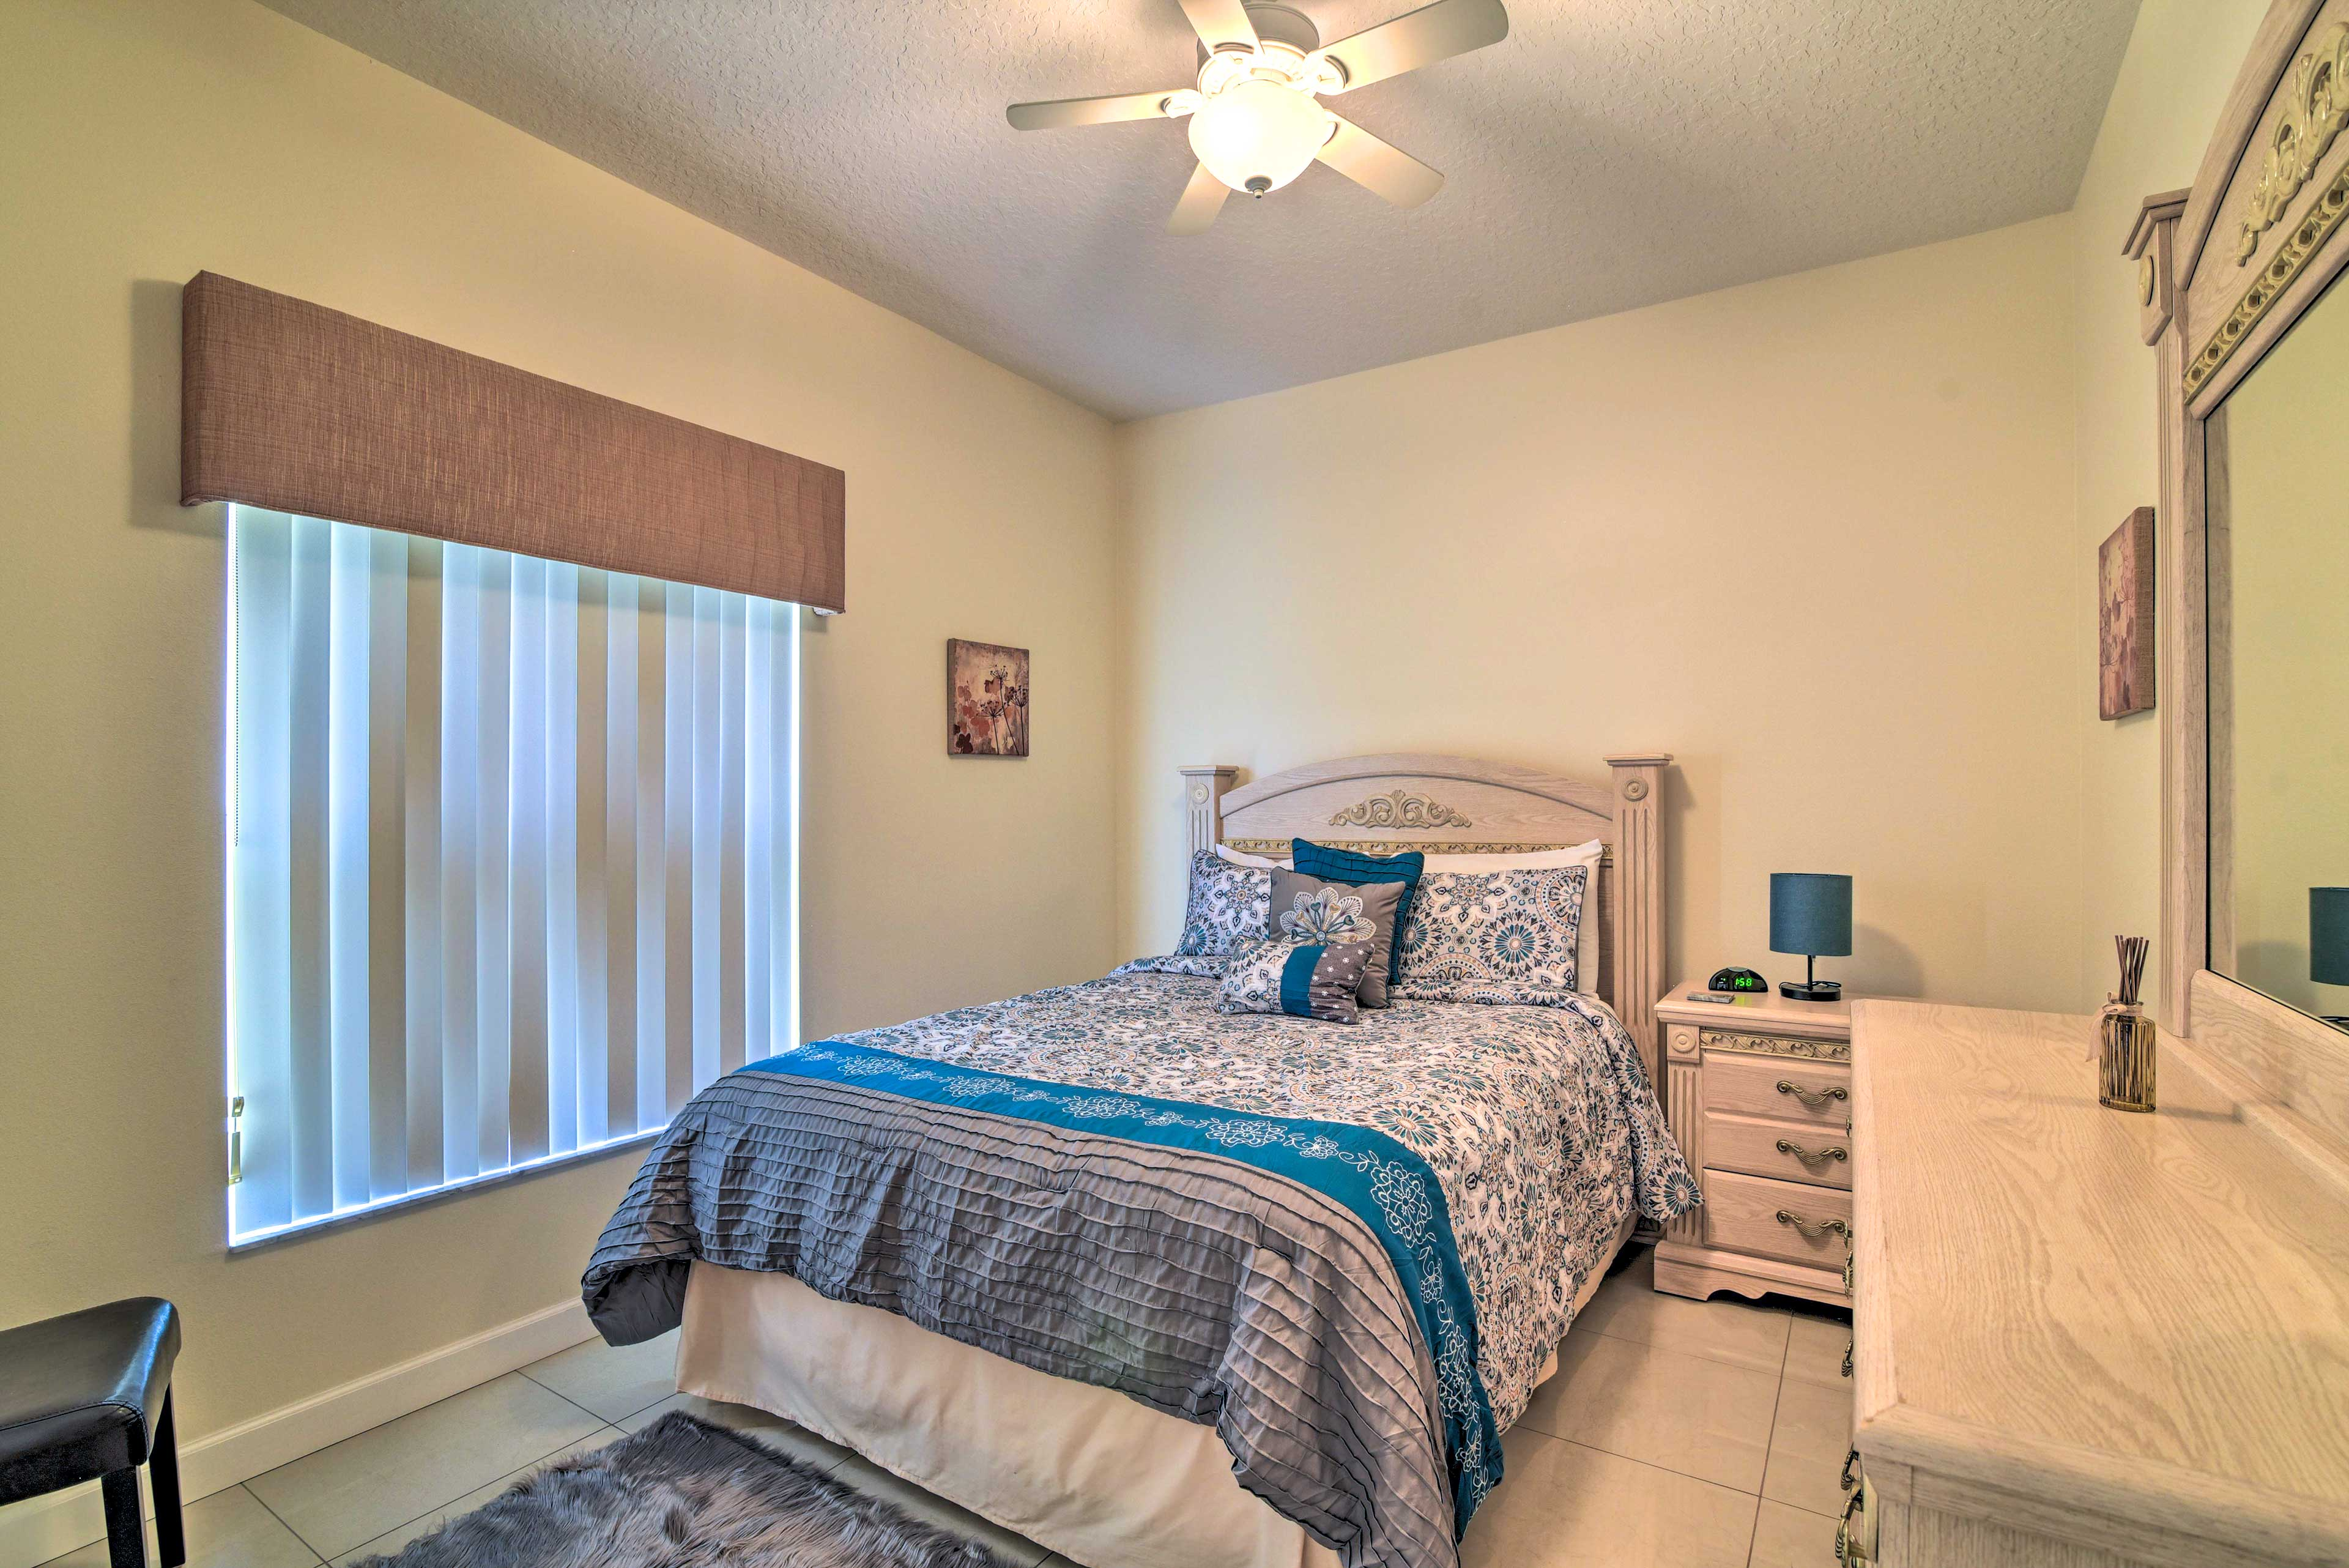 Two guests can claim this queen bed as their own.